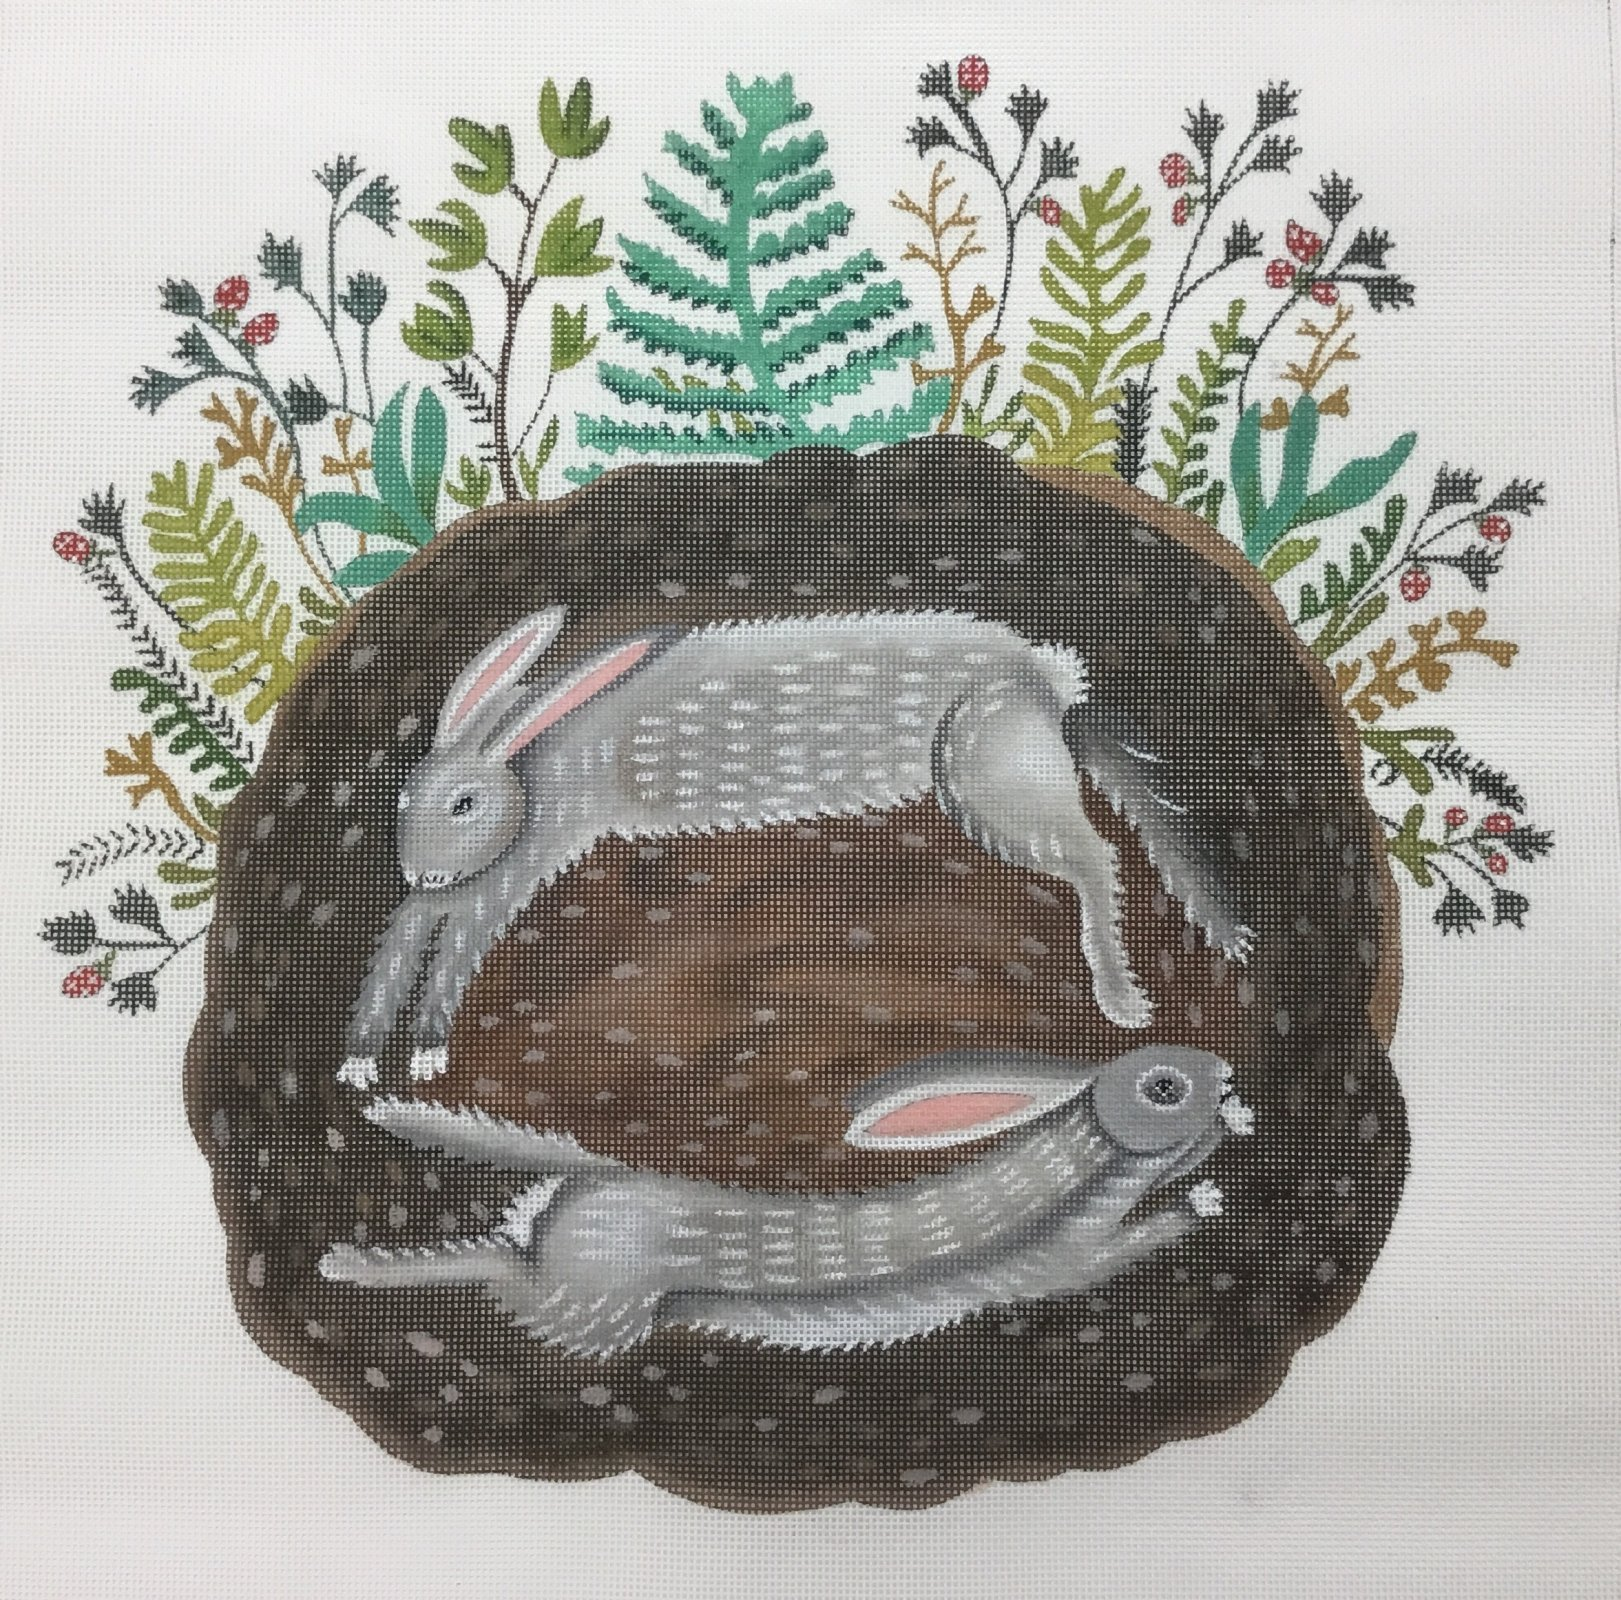 Bunnies in the Burrow,18 ct.,14x14